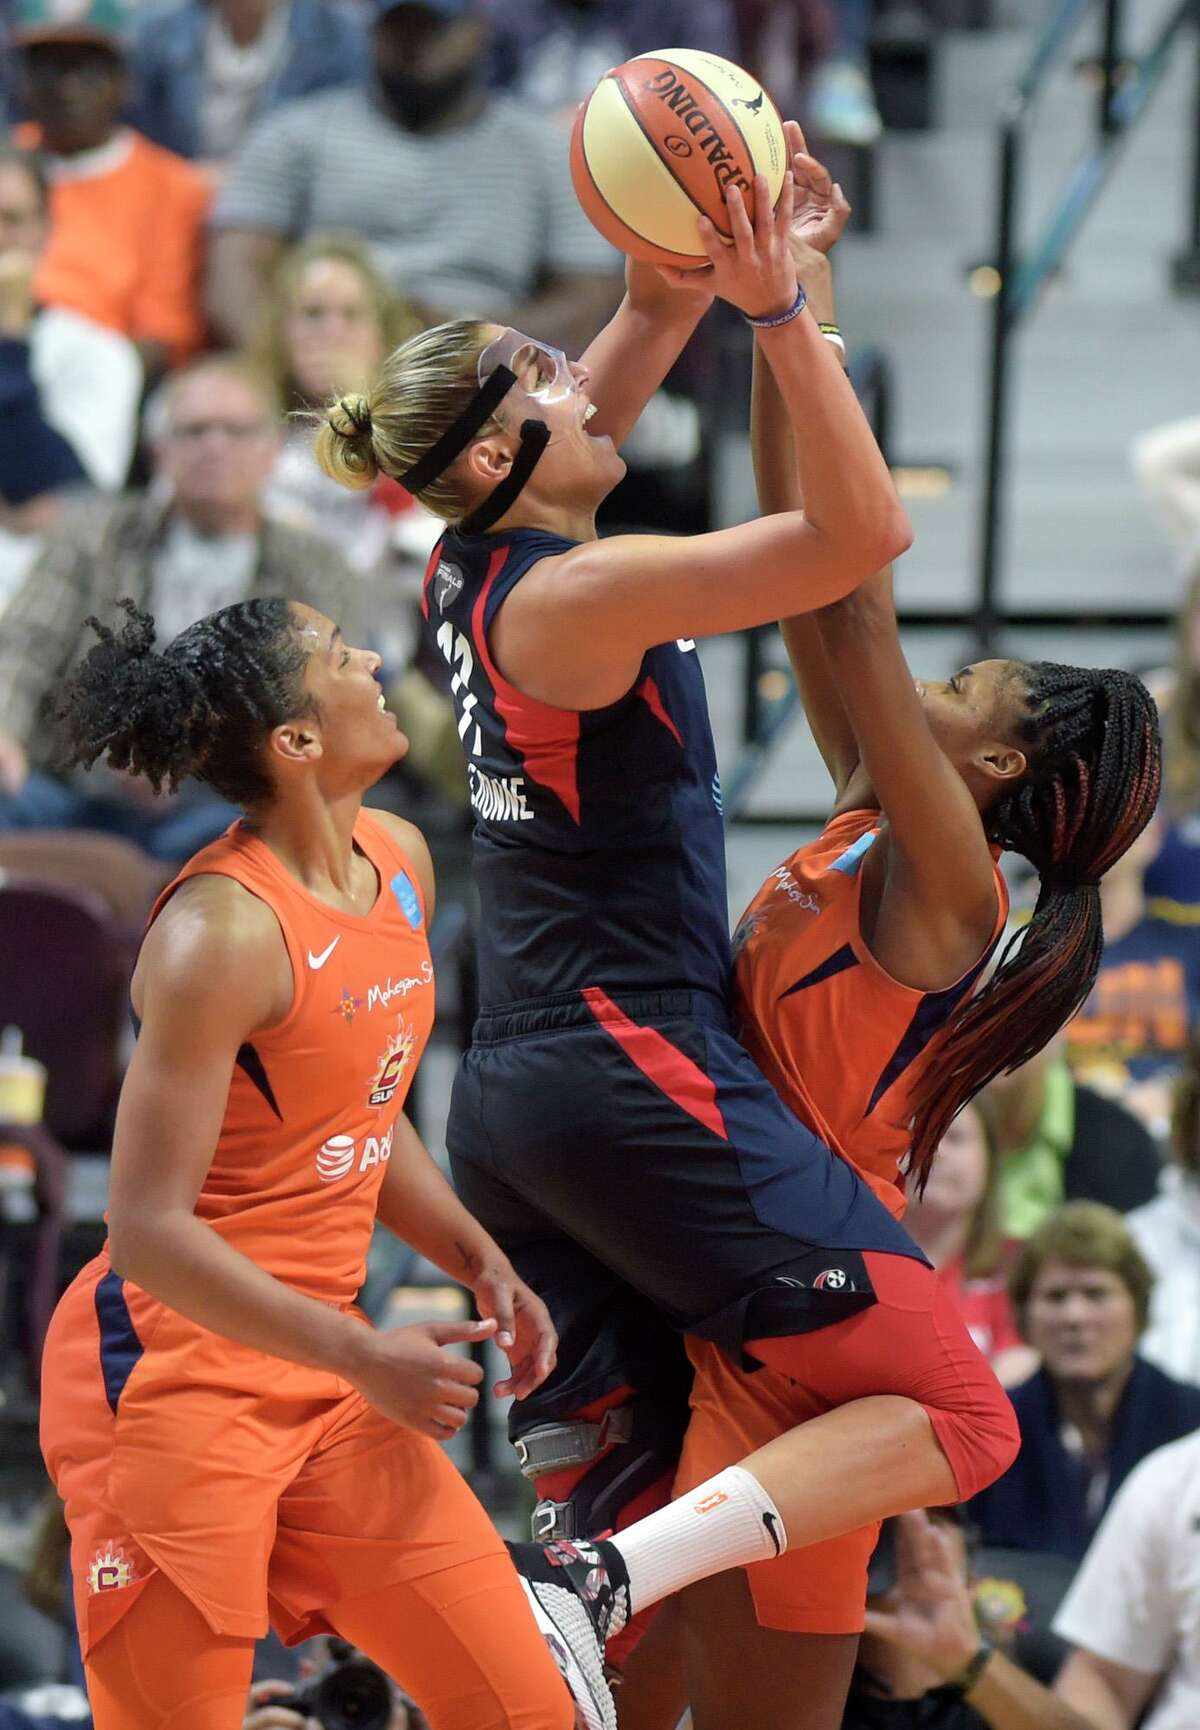 Washington Mystics forward Elena Delle Donne, center, goes to the basket between Connecticut Sun players Alyssa Thomas, left, and Bria Holmes in Game 3 of the WNBA Finals on Sunday, Oct. 6, 2019, at Mohegan Sun Arena in Uncasville. Washington won the game 94-81.